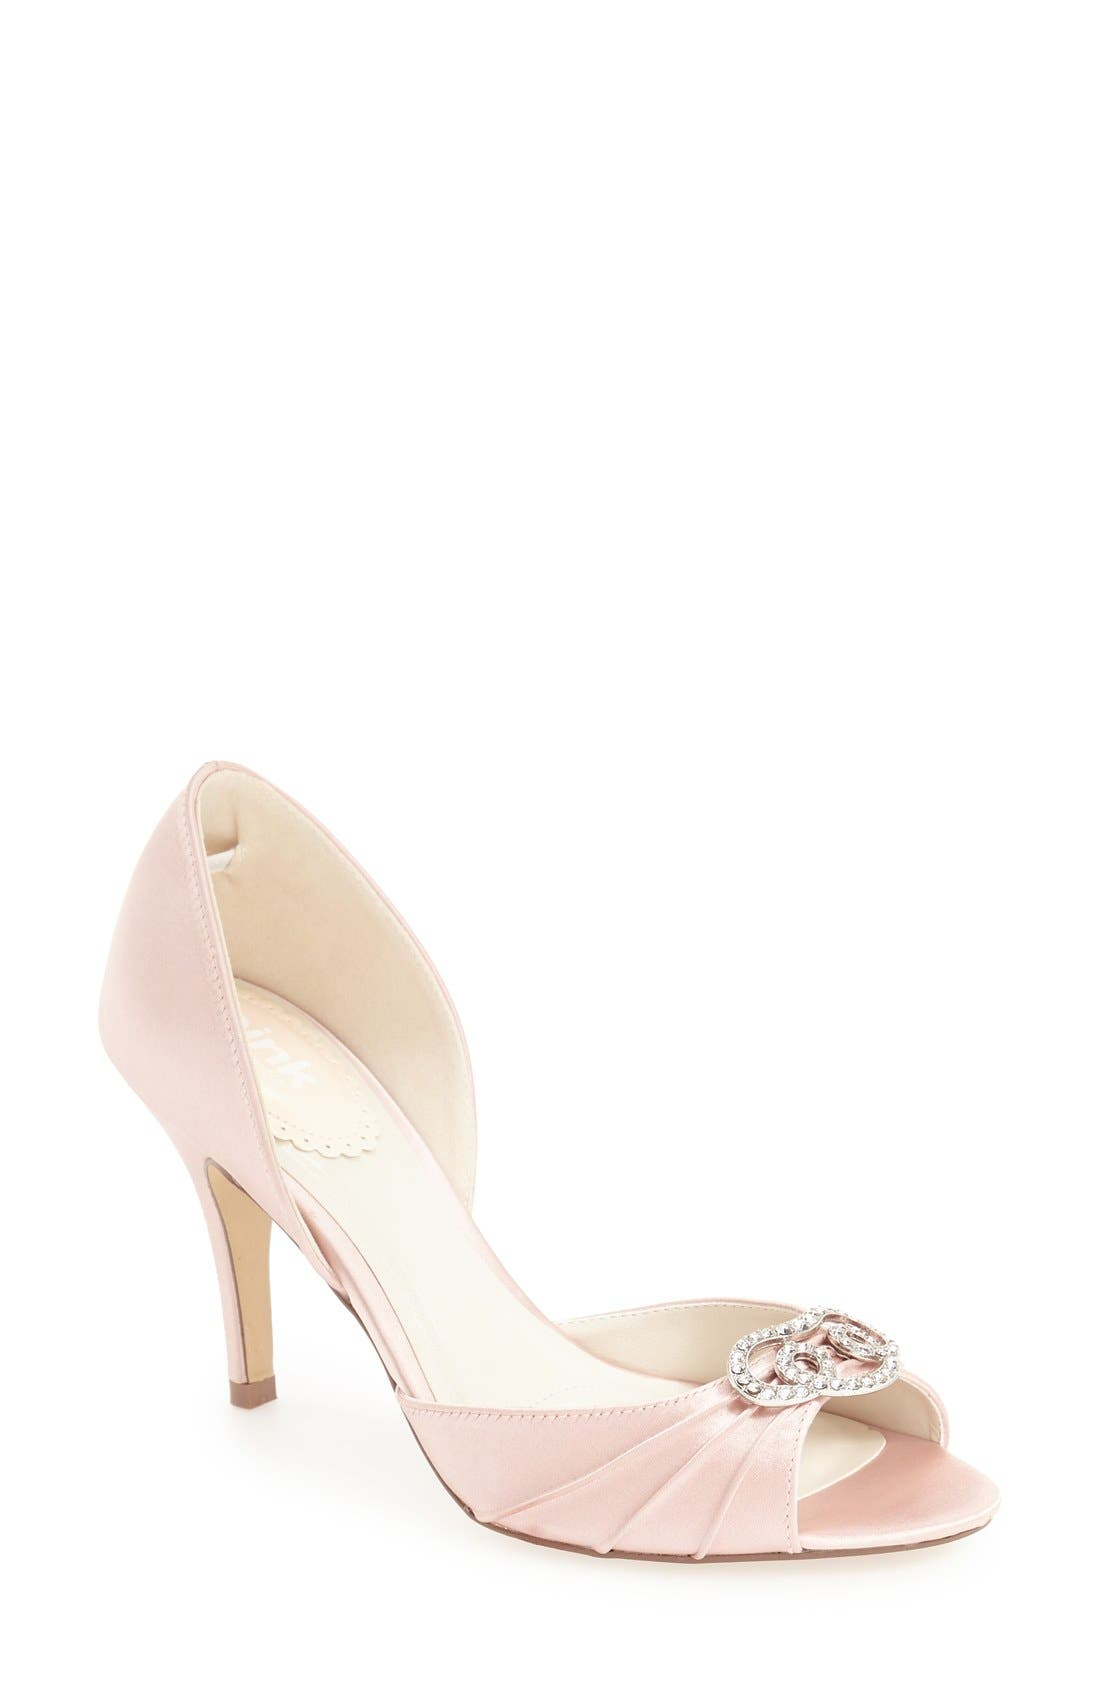 Alternate Image 1 Selected - pink paradox london 'Amour' d'Orsay Pump (Women)